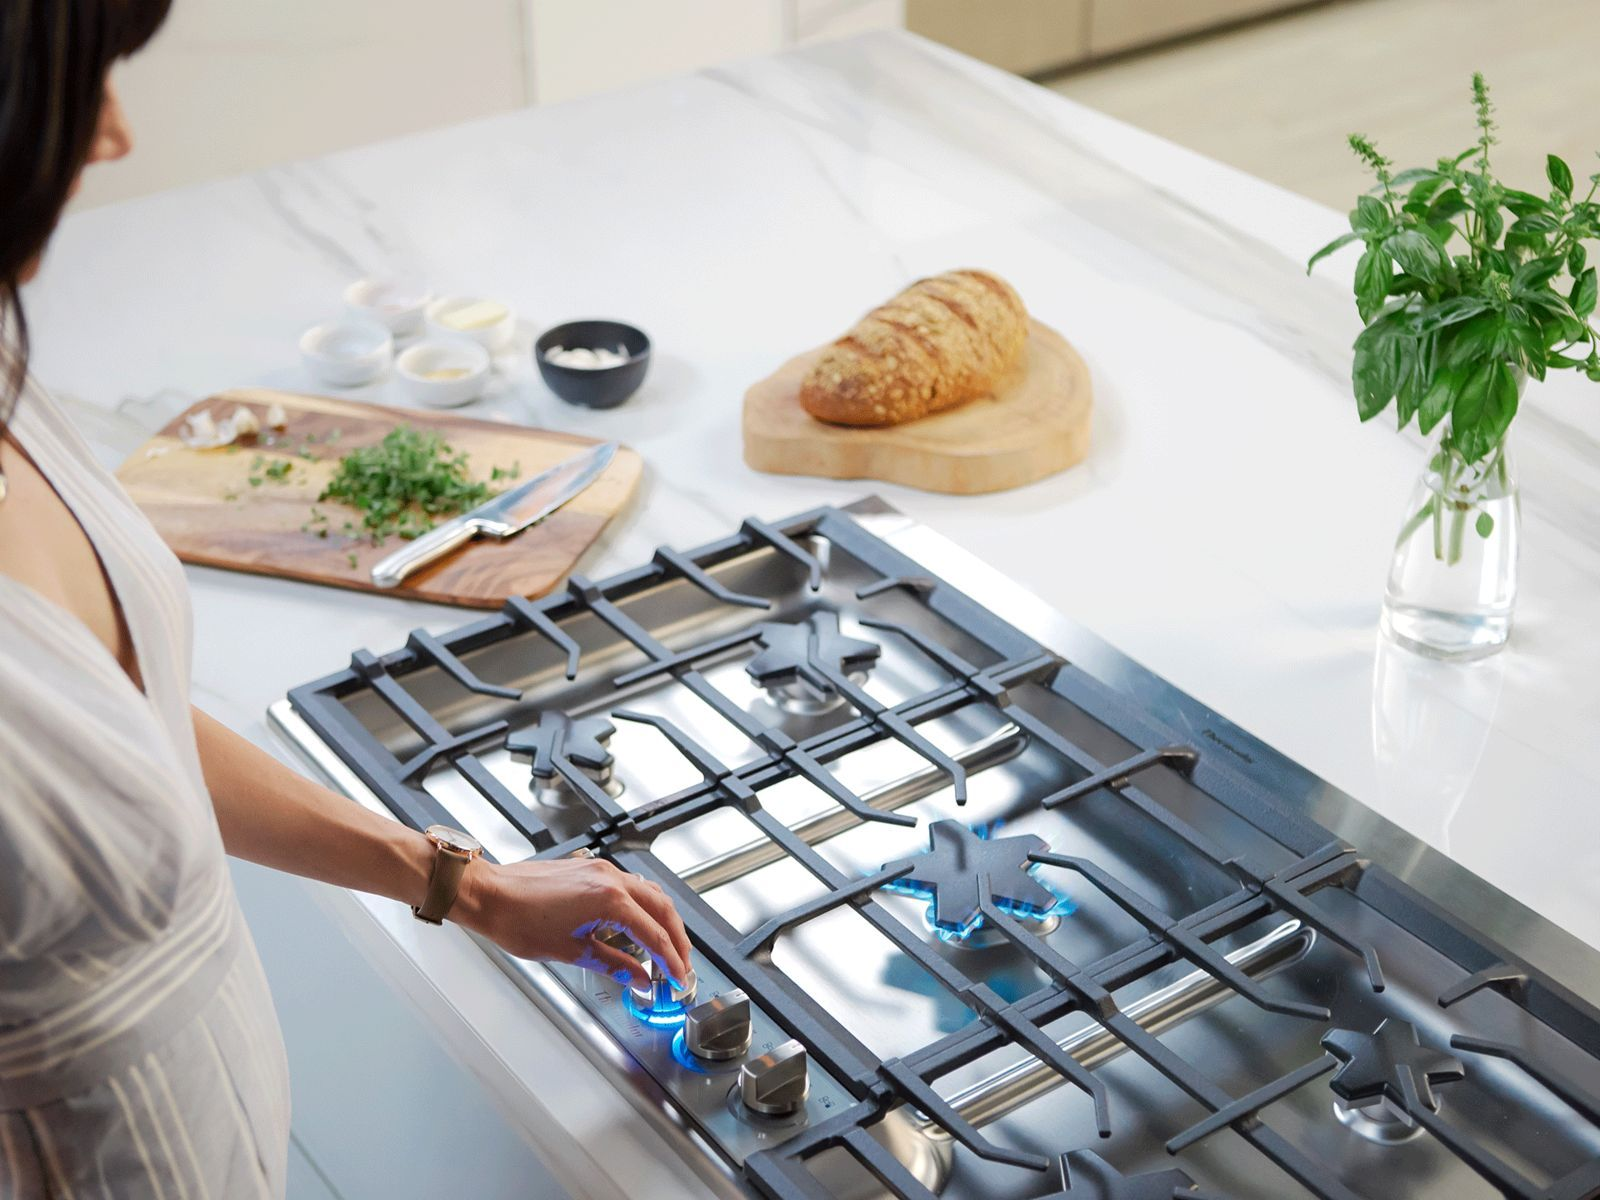 MCIM02878928_thermador-gas-cooktops-SGSXP365TS-Star-Quality-Performance-woman-turning-knob_1920x1440